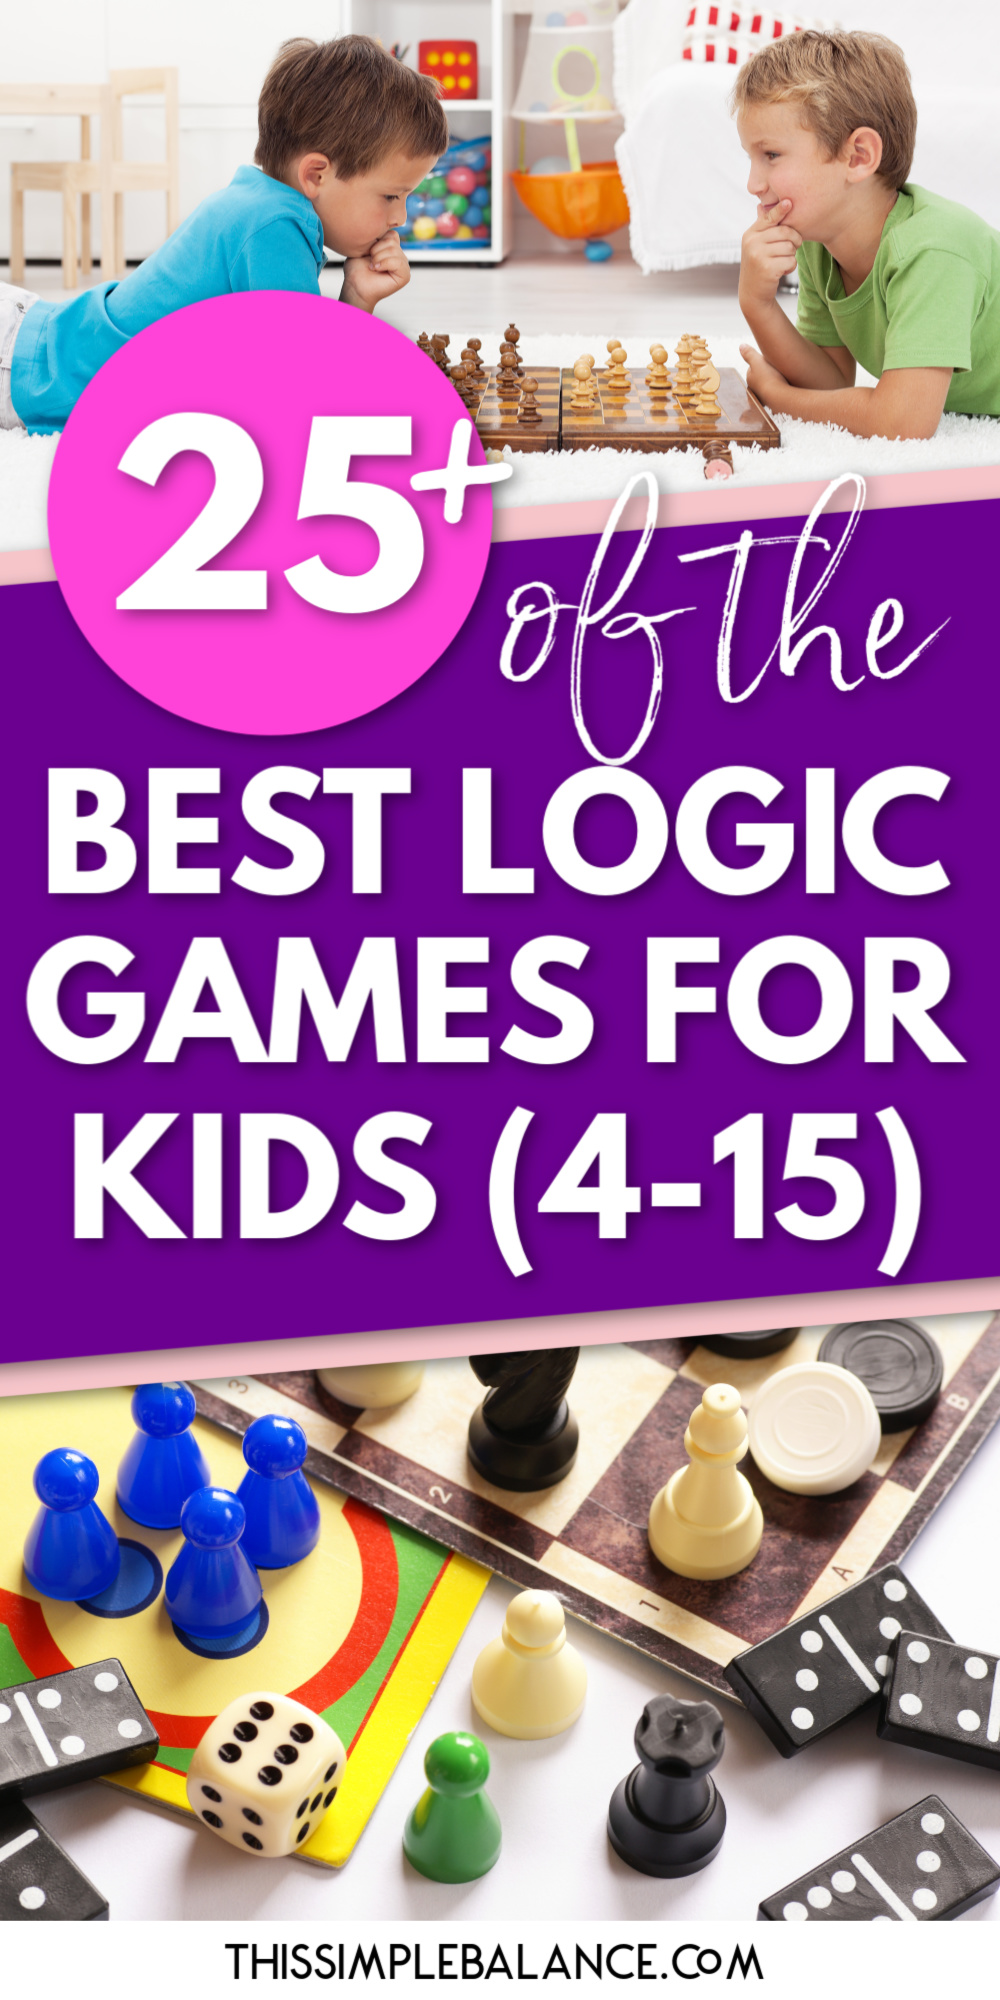 kids playing chess and other logic board game pieces